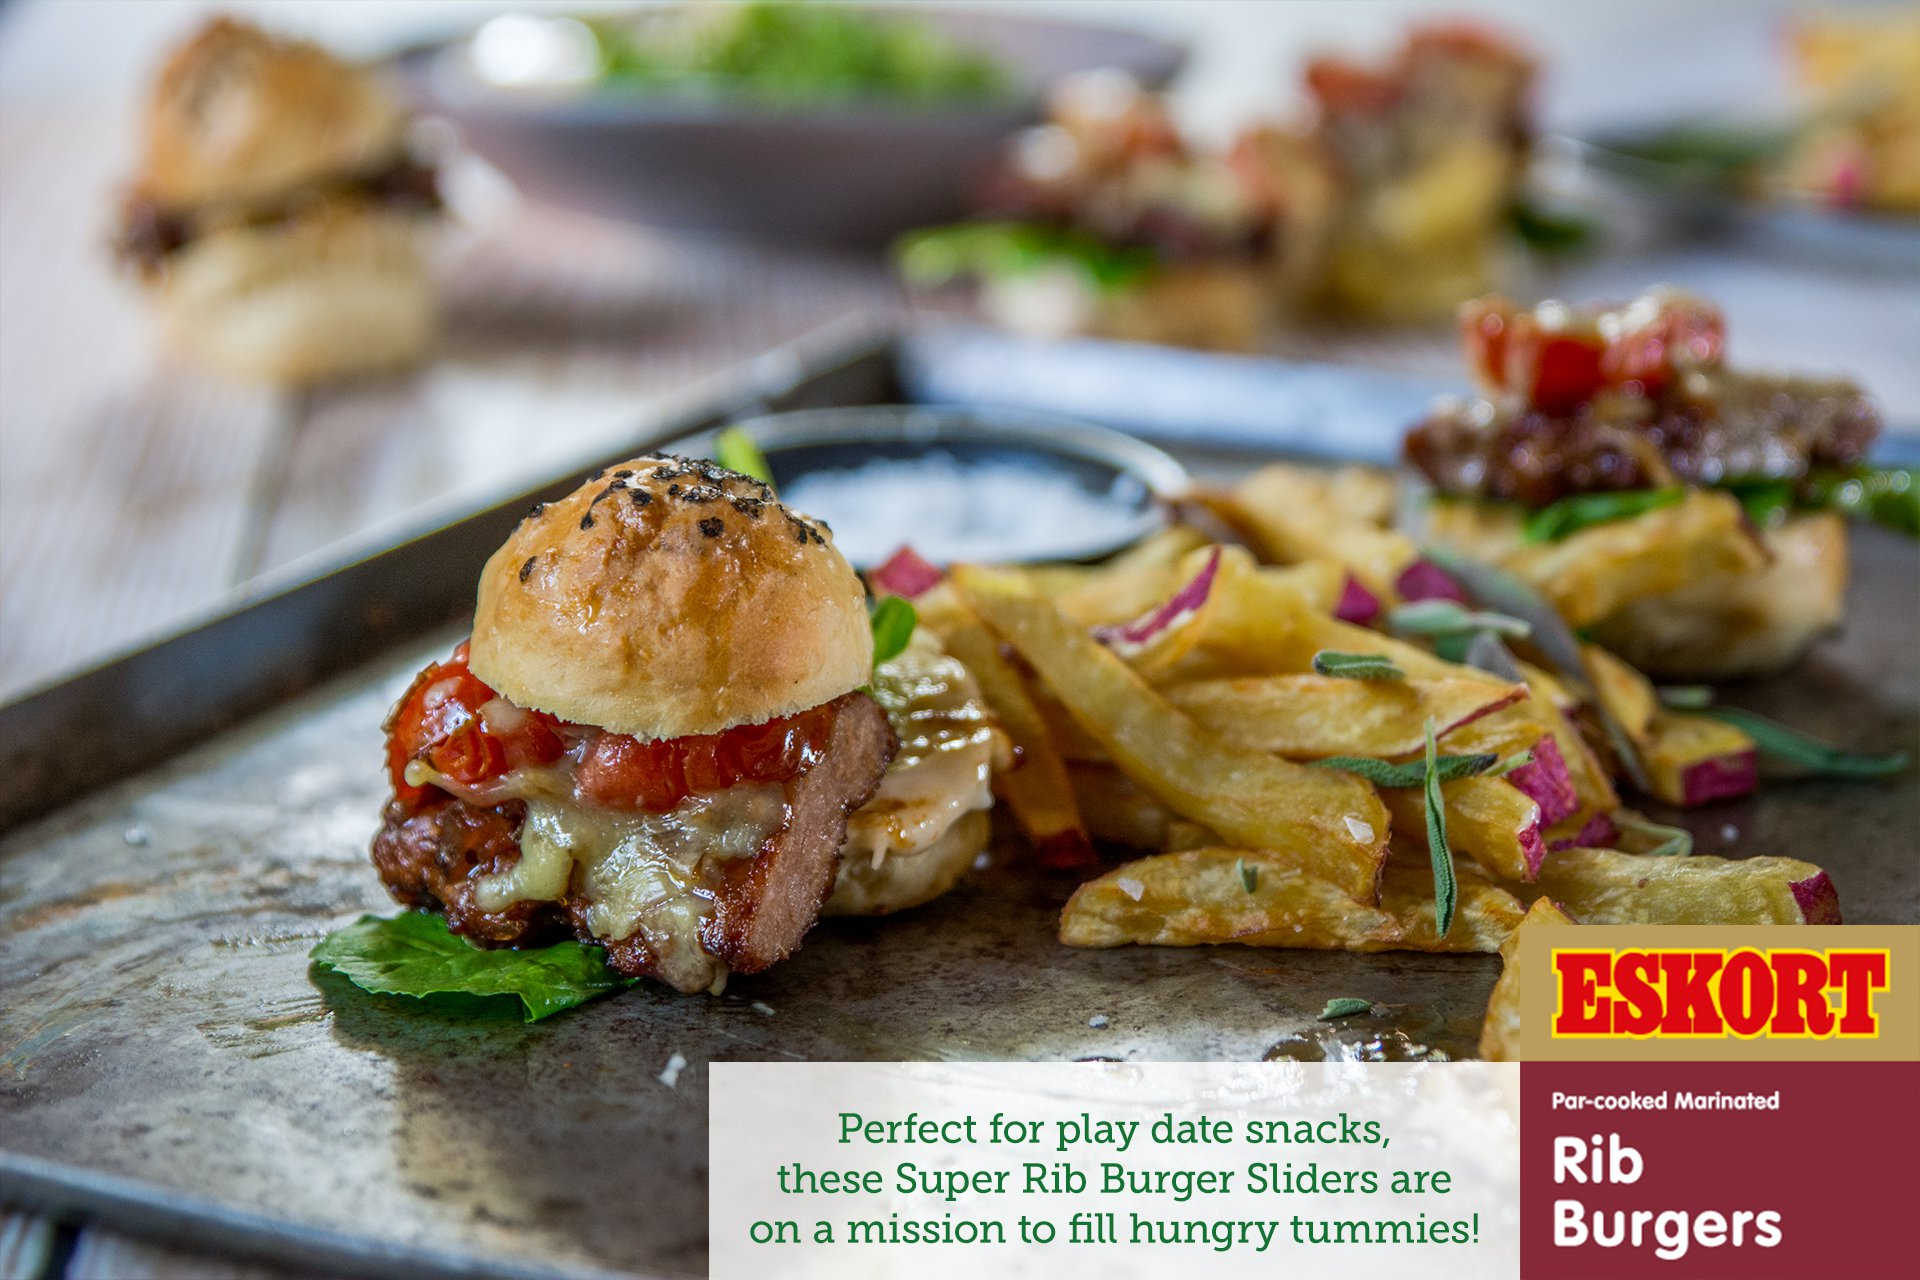 Super Rib Burger Sliders